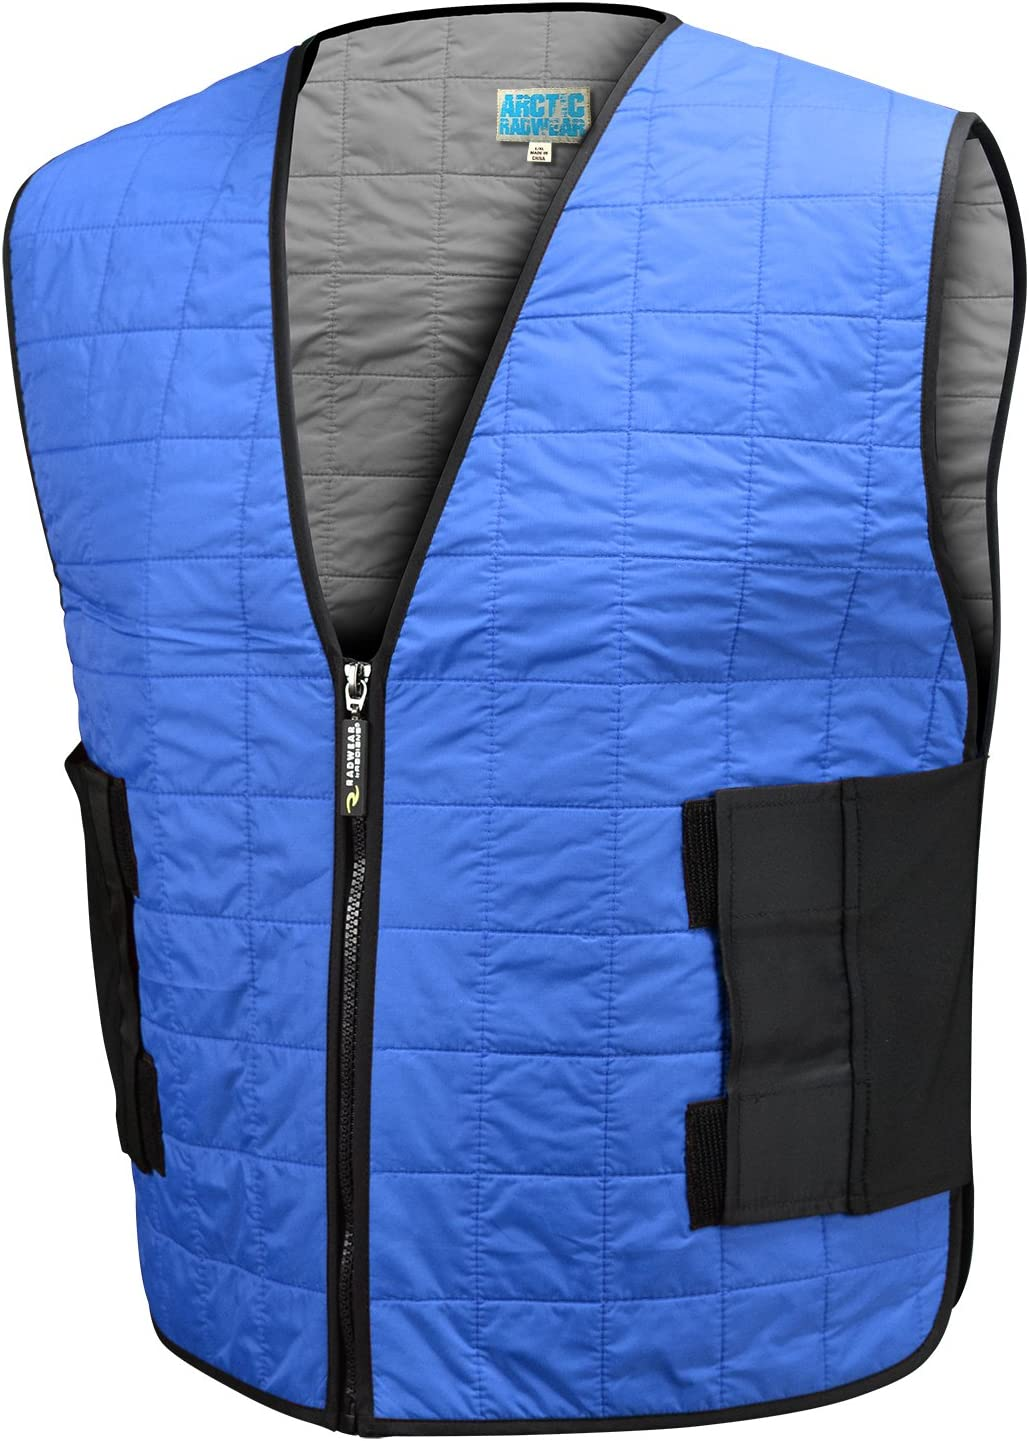 Radians Arctic Radwear Evaporative Cooling Vest Wear Dry Zipper - Blue